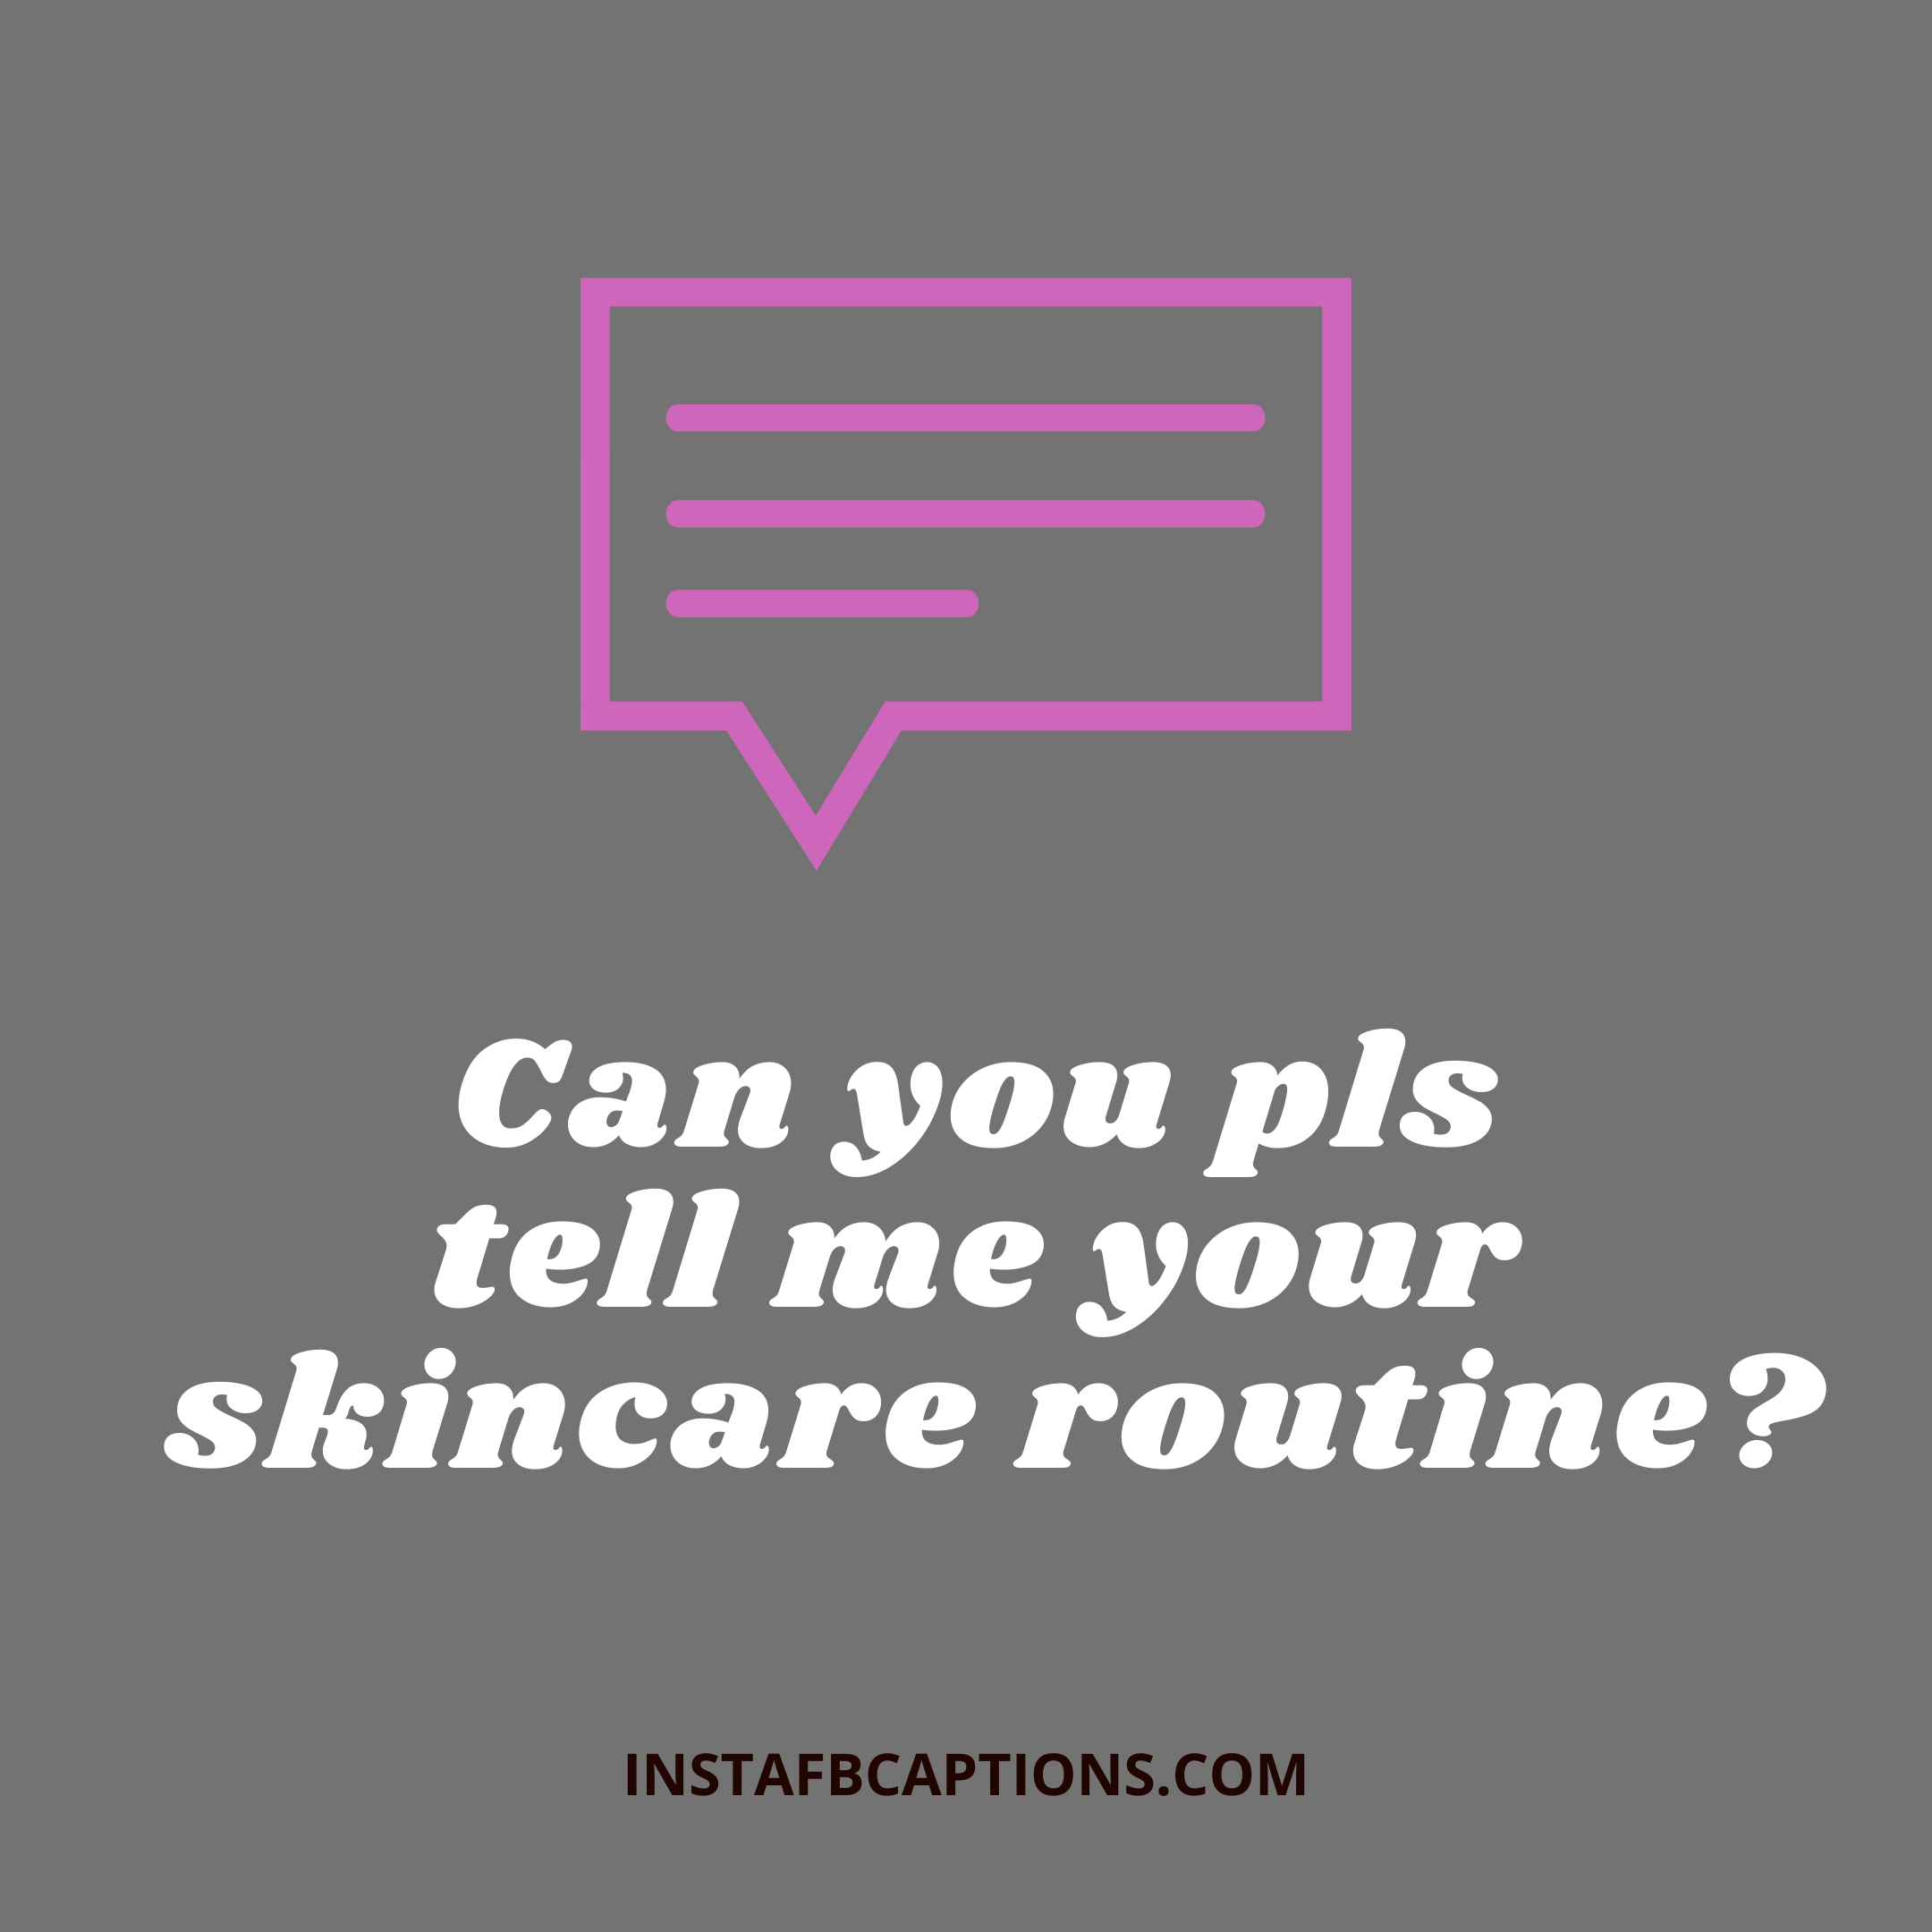 Can You Pls Tell Me Your Skincare Routine   - Can you pls tell me your skincare routine  - 600+ Best Comments for Girls Pic Instagram 2020